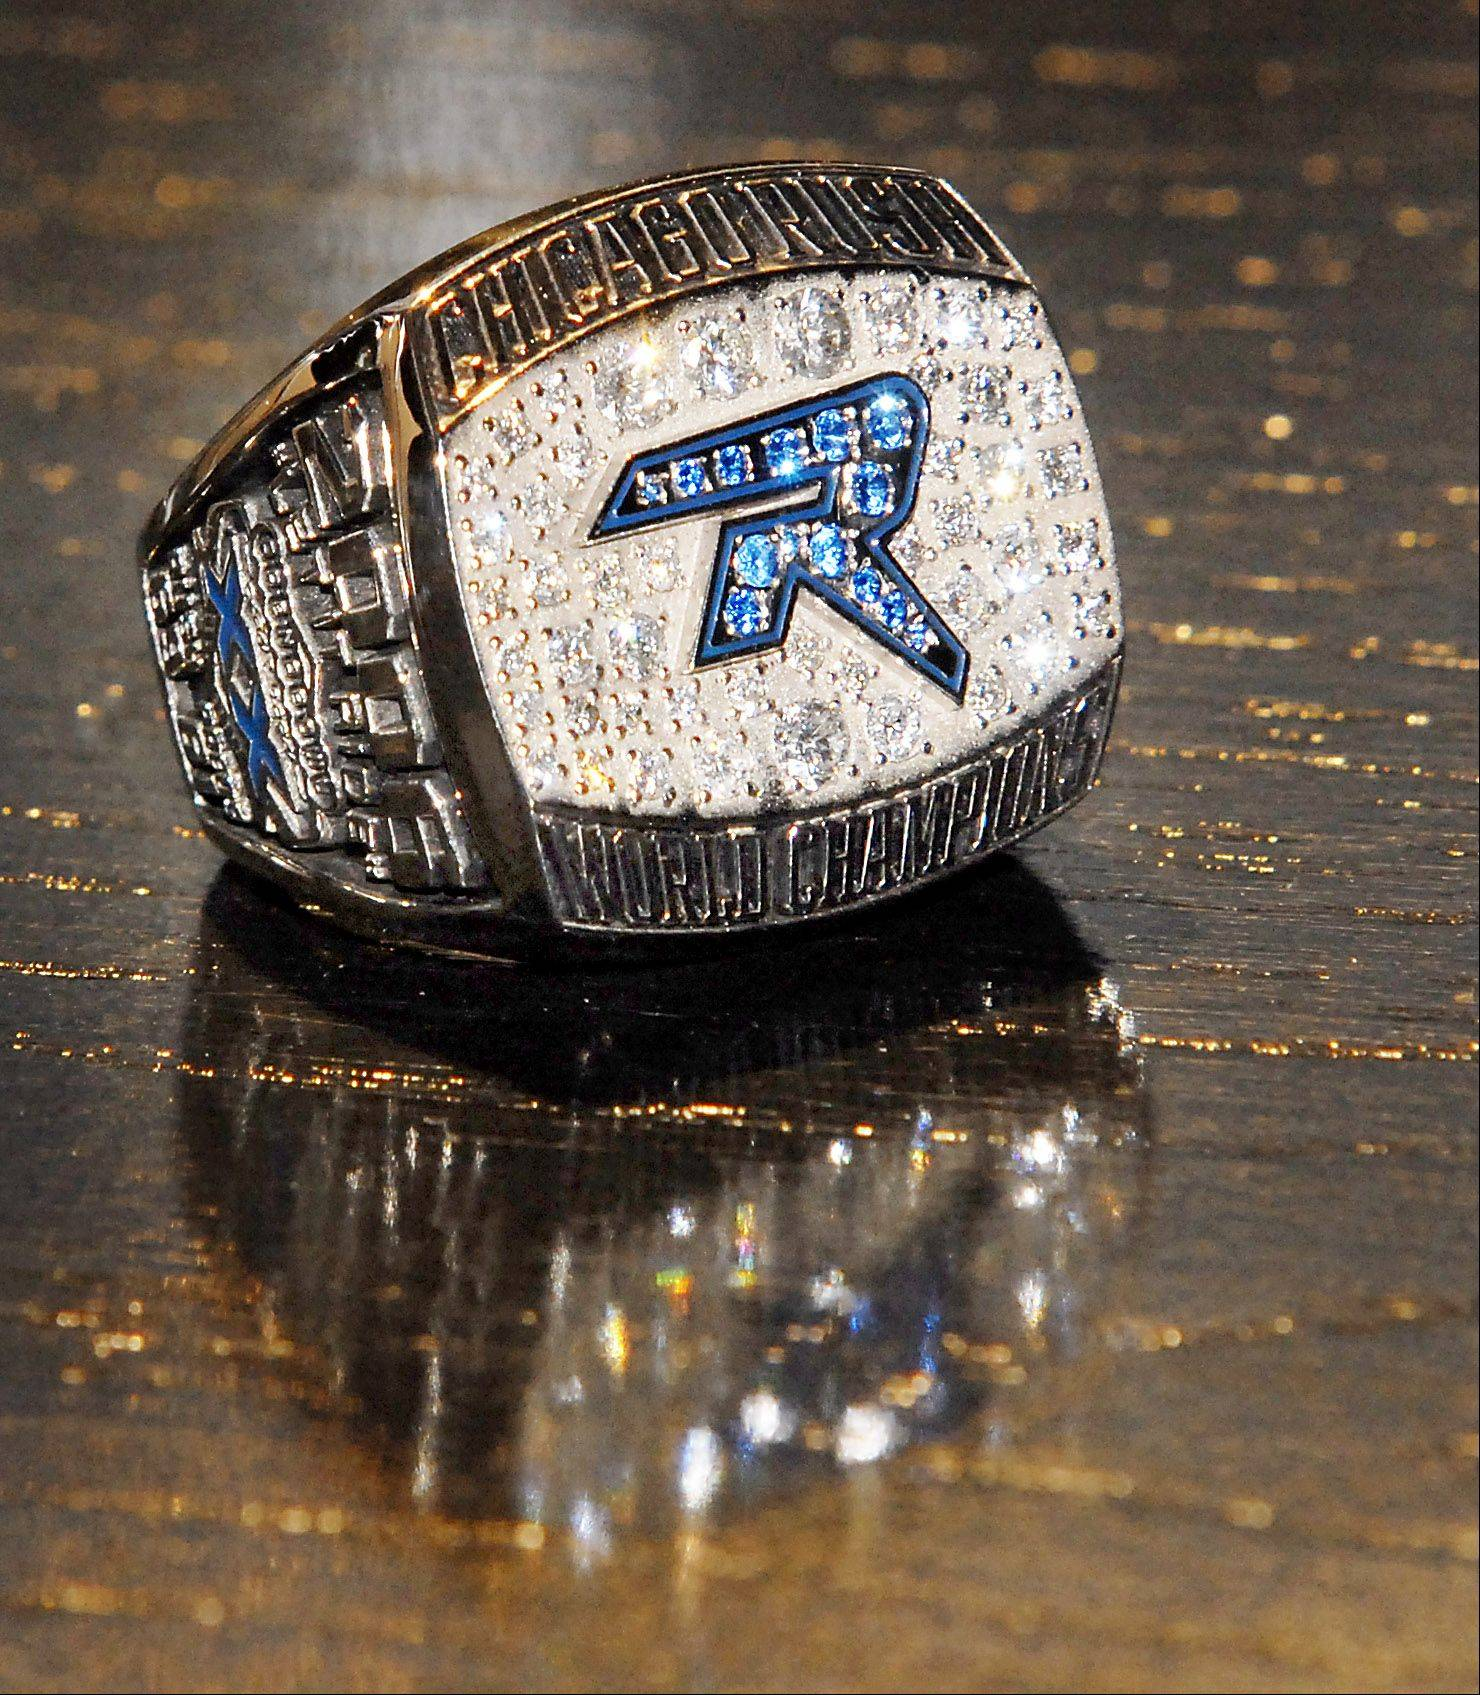 The Chicago Rush, which won the 2006 ArenaBowl XX title, will be returning for the 2013 season, league officials announced Friday after confirming a deal with a new ownership group. A deal with Allstate Arena, however, has not be finalized.